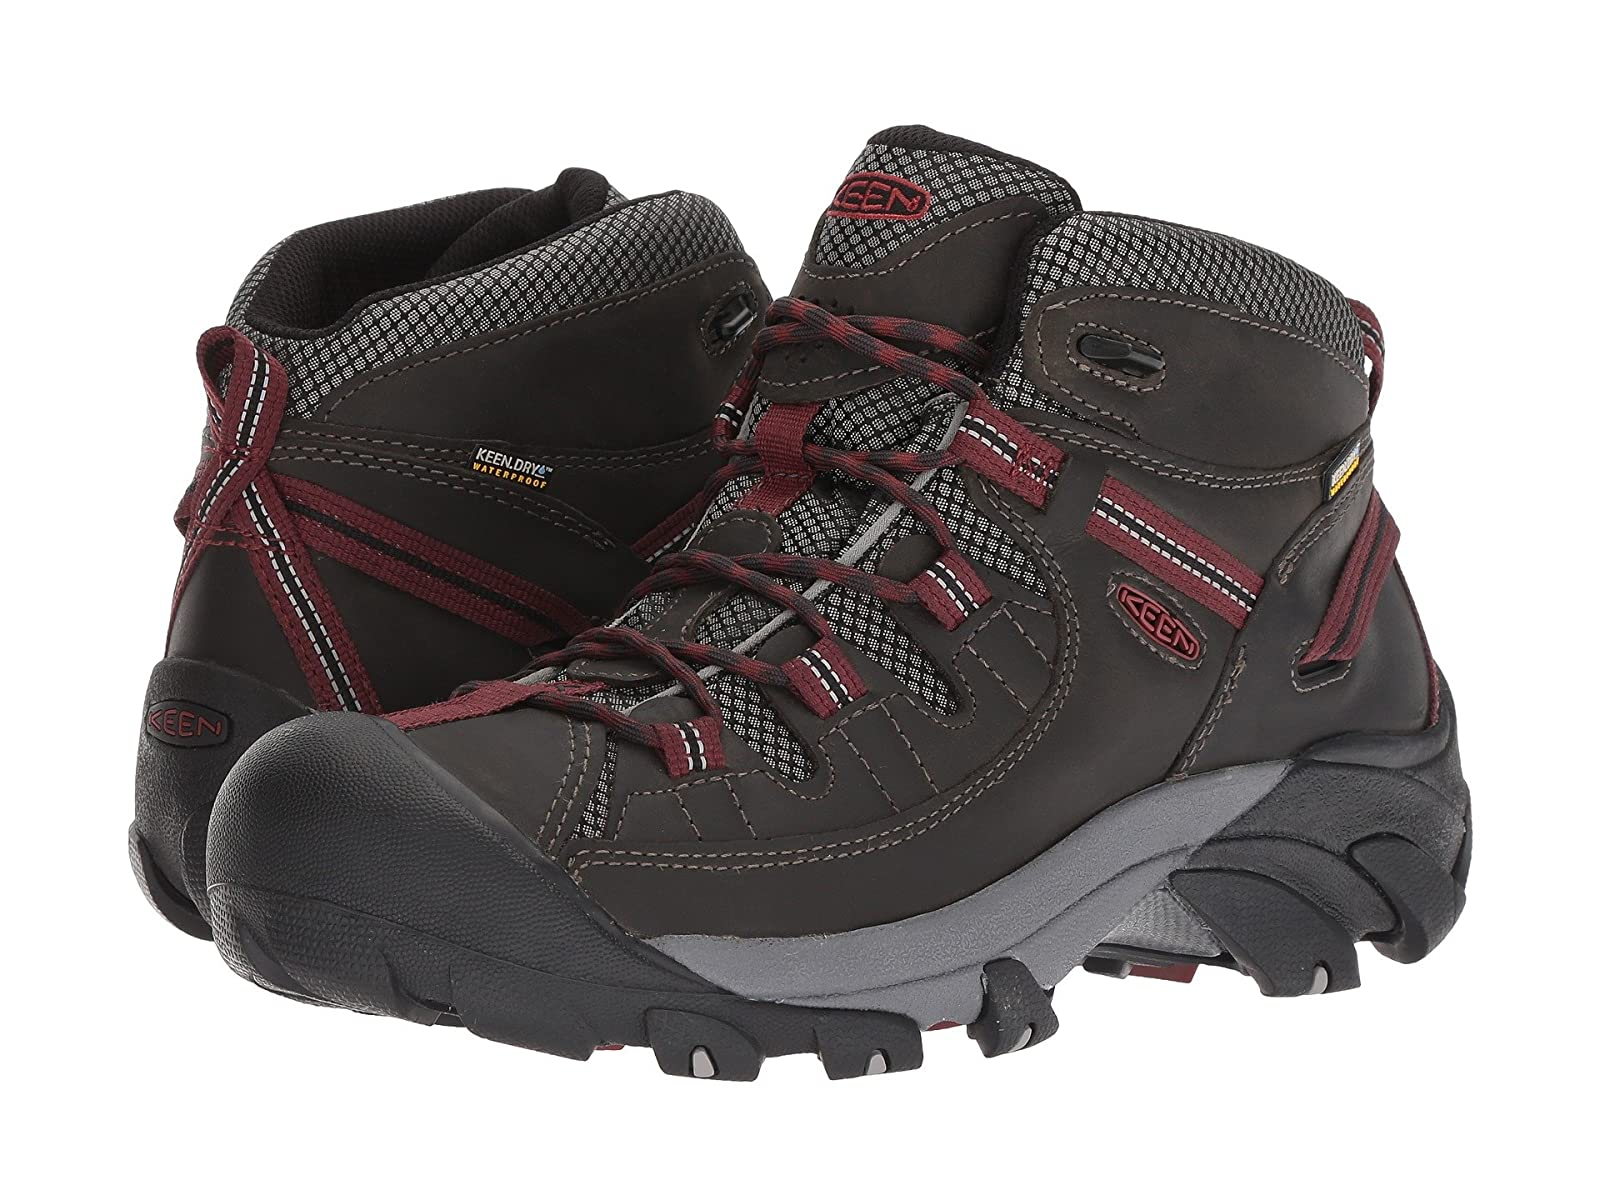 Keen Targhee II Mid WPAffordable and distinctive shoes